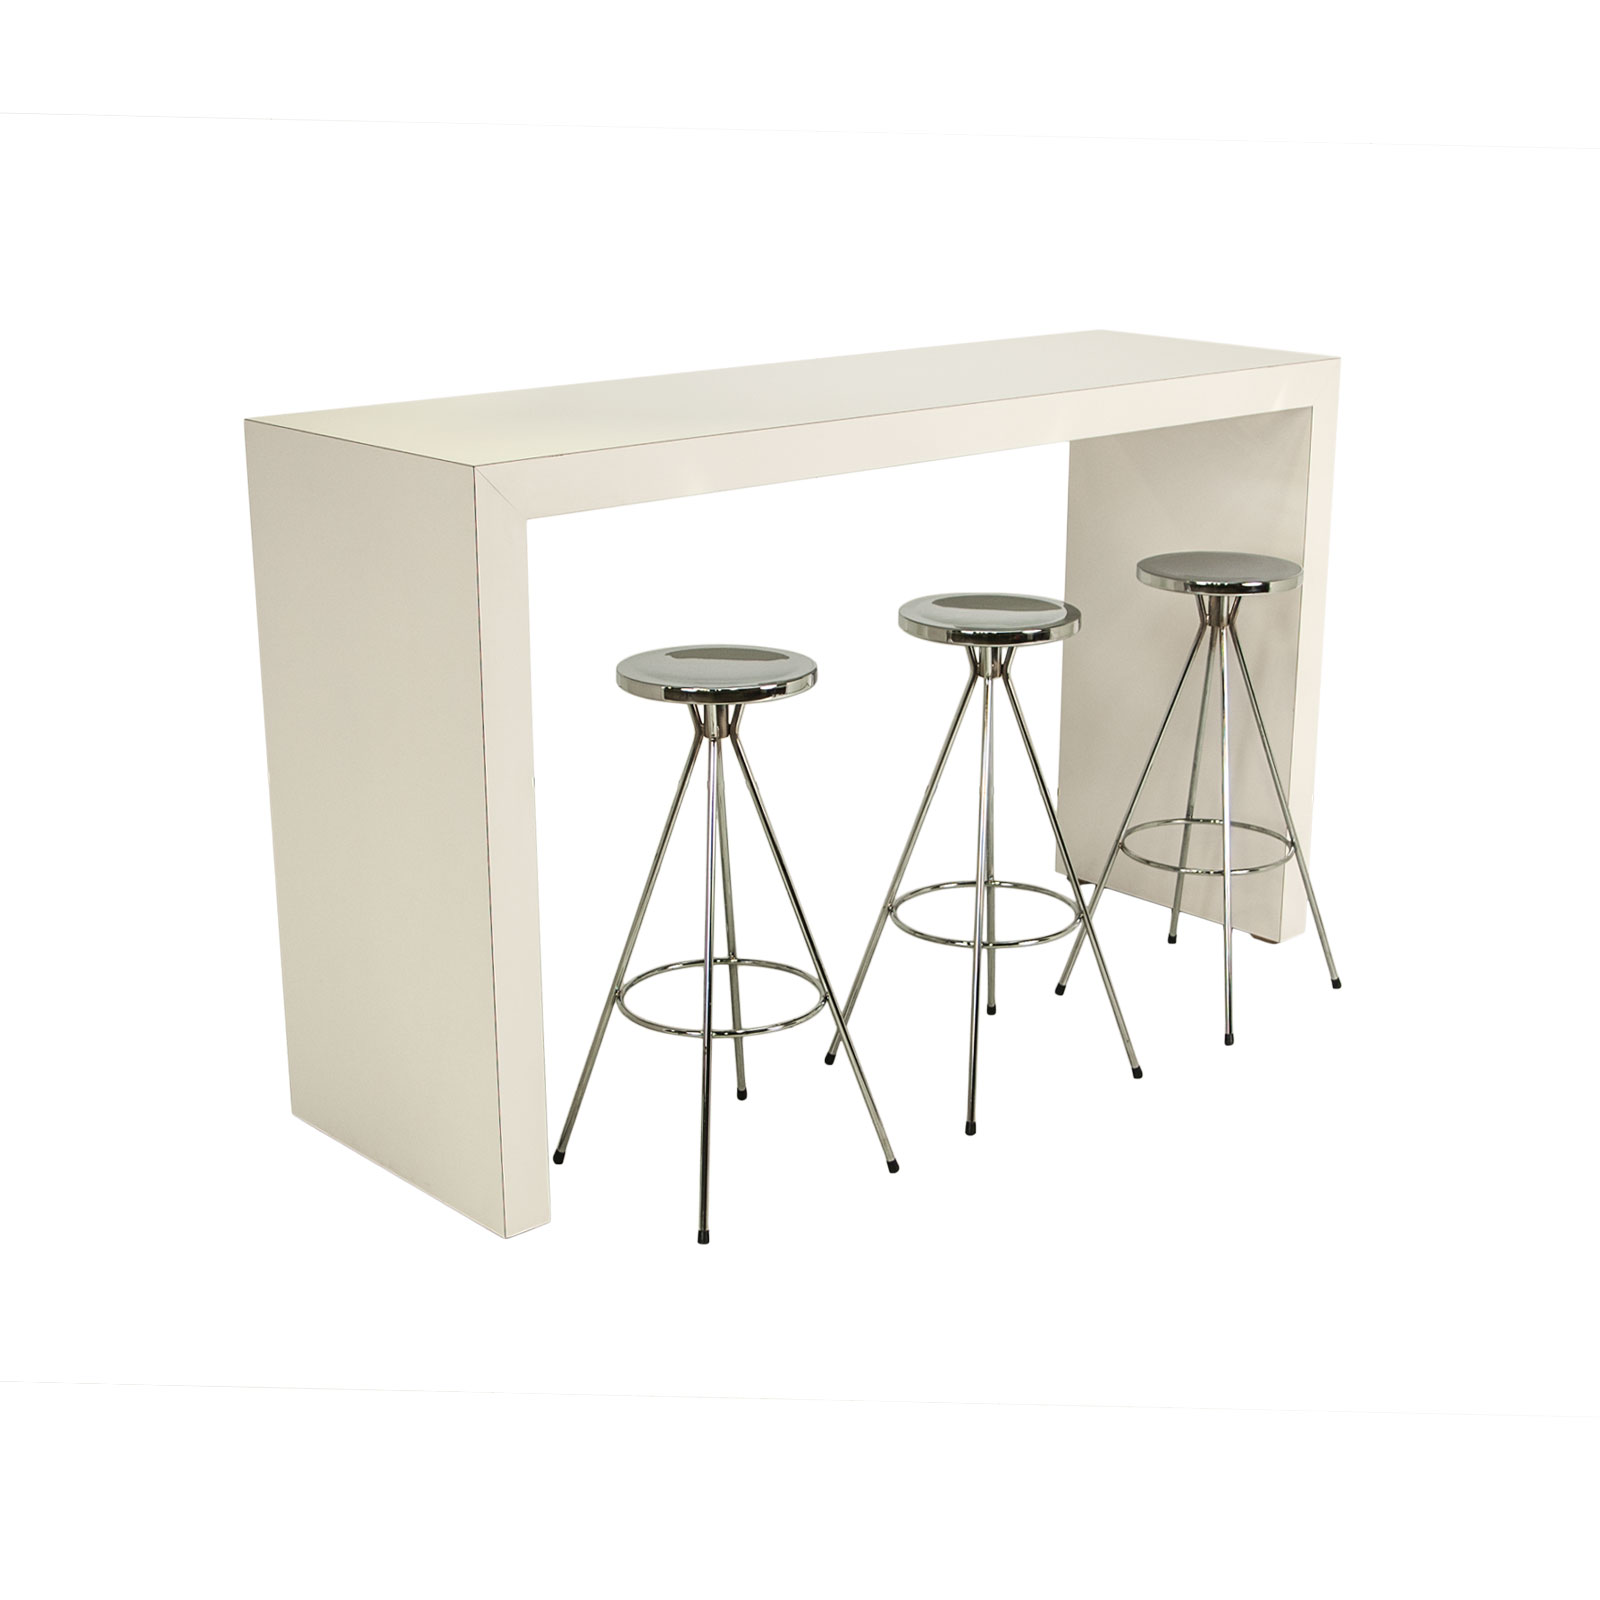 Bar Tables For Rent Event Furniture Rental FormDecor - Parsons pub table